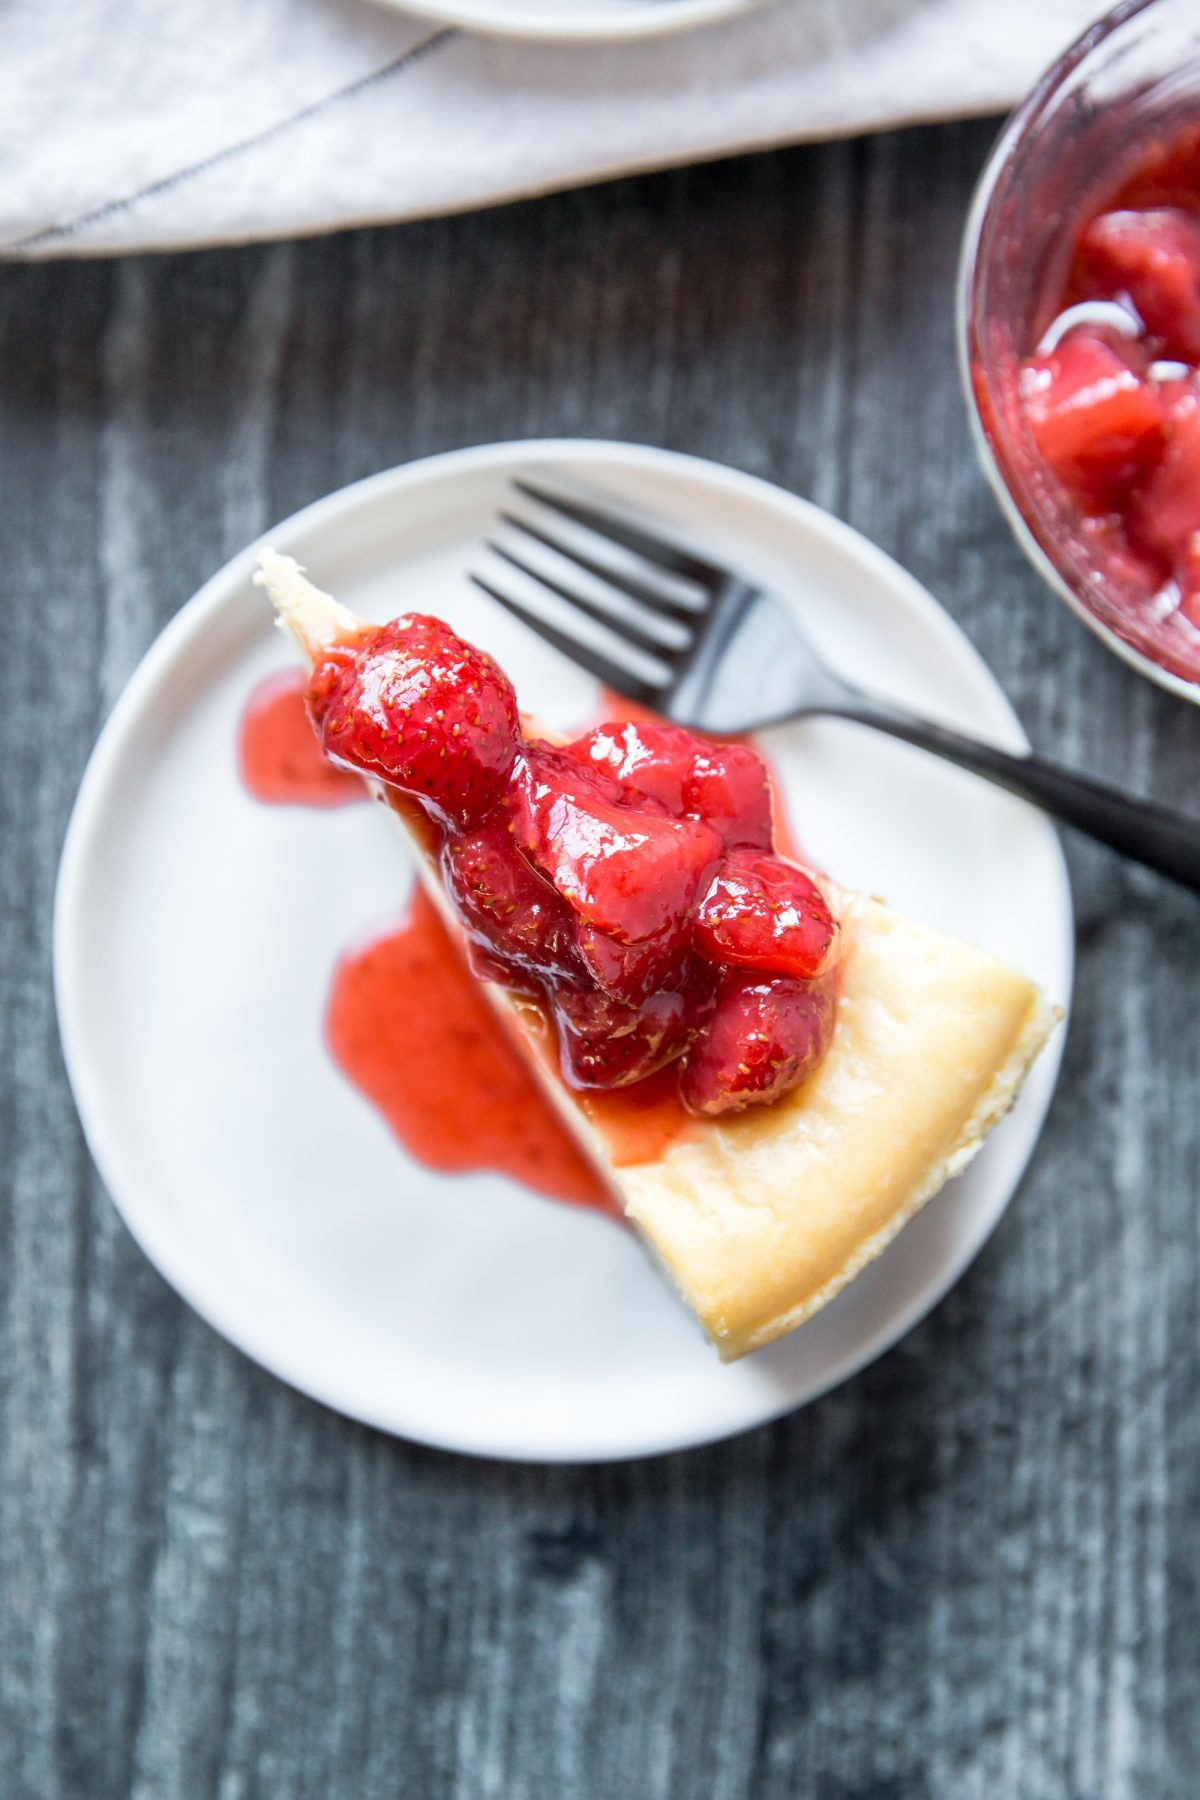 Overhead shot of a slice of cheesecake topped with strawberries and sauce on a white plate